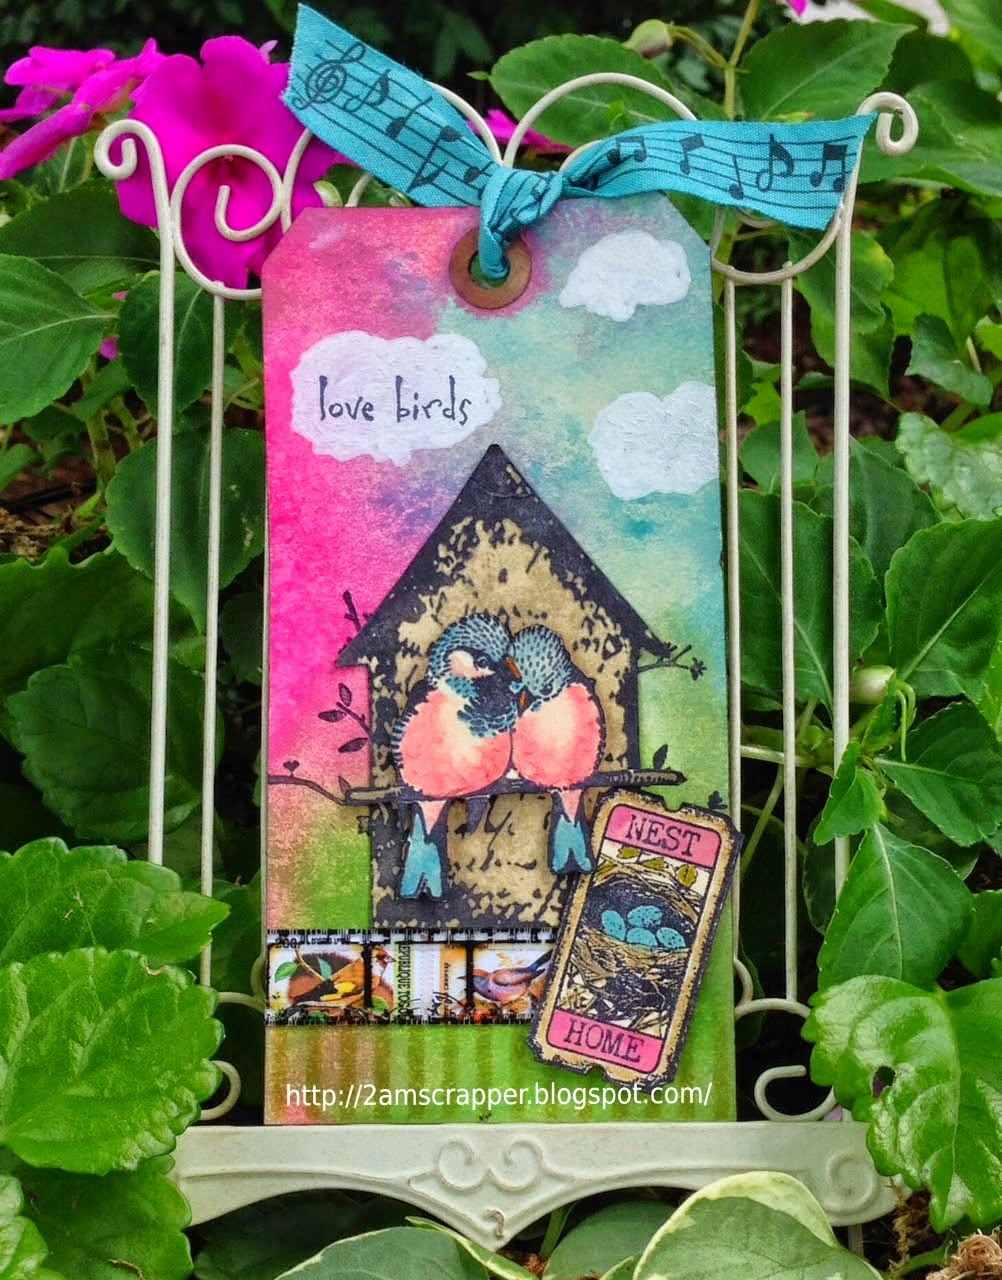 My guest designer tag for Things With Wings